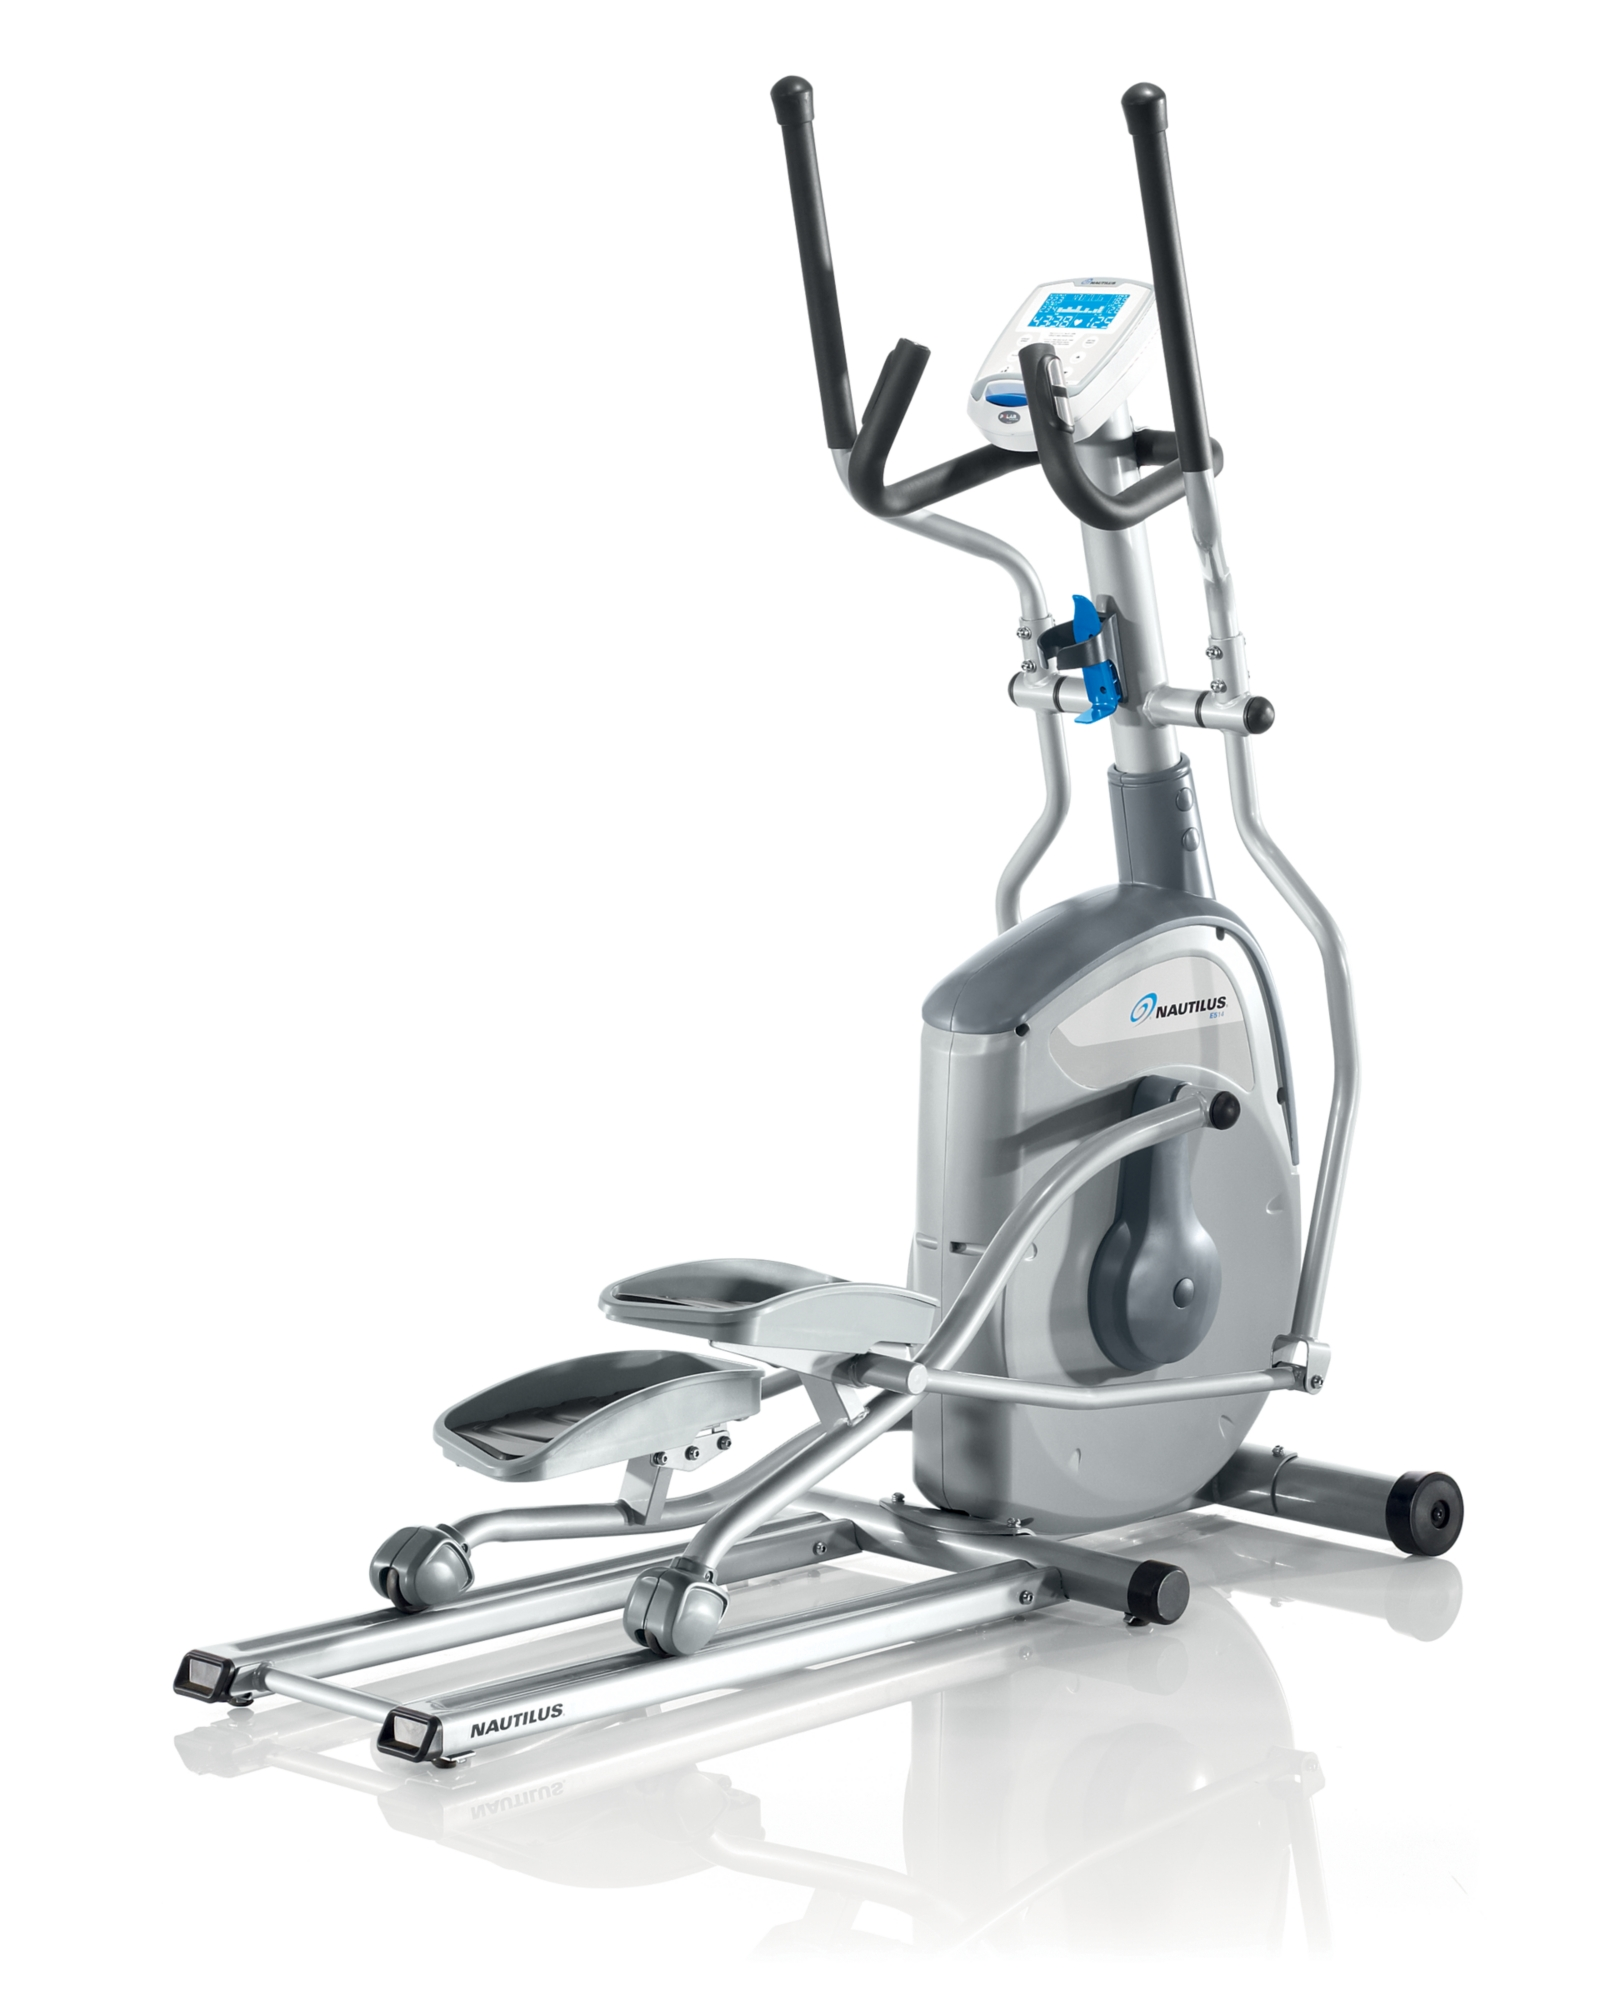 Nautilus 514c Elliptical